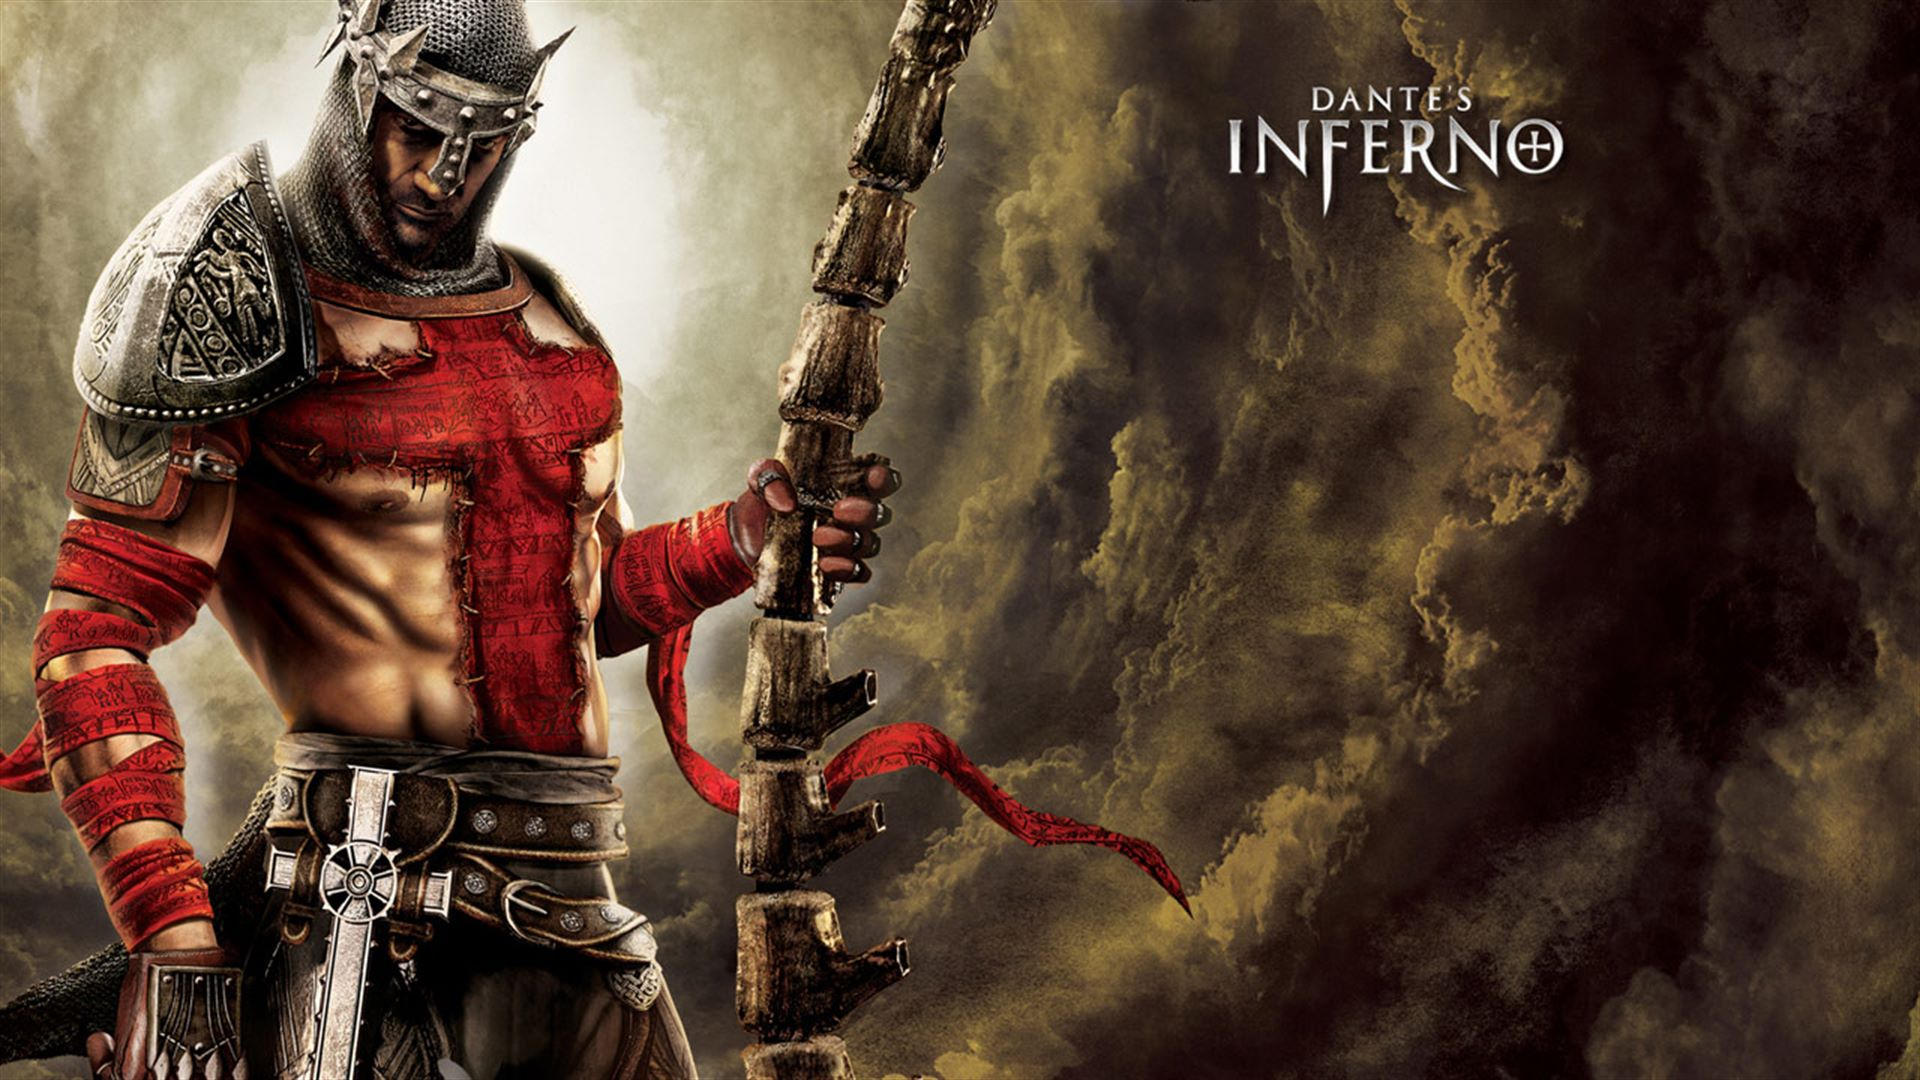 dantes inferno animated movie download